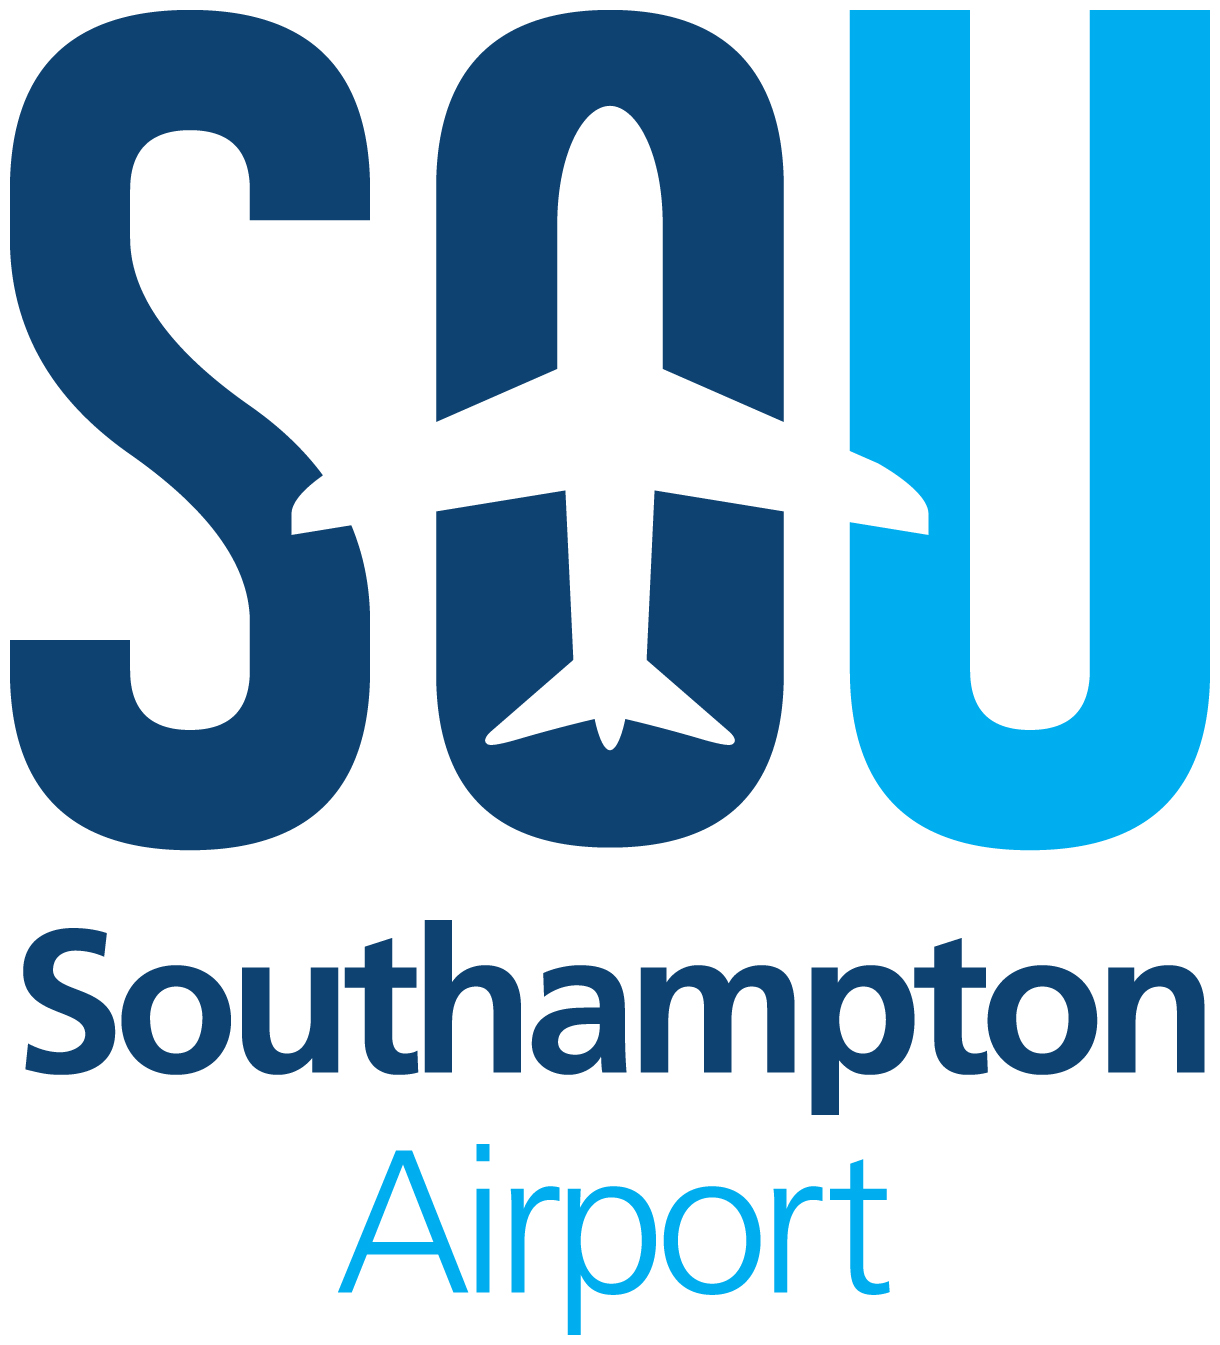 Fly from southampton airport events wave 105 thumbnail m4hsunfo